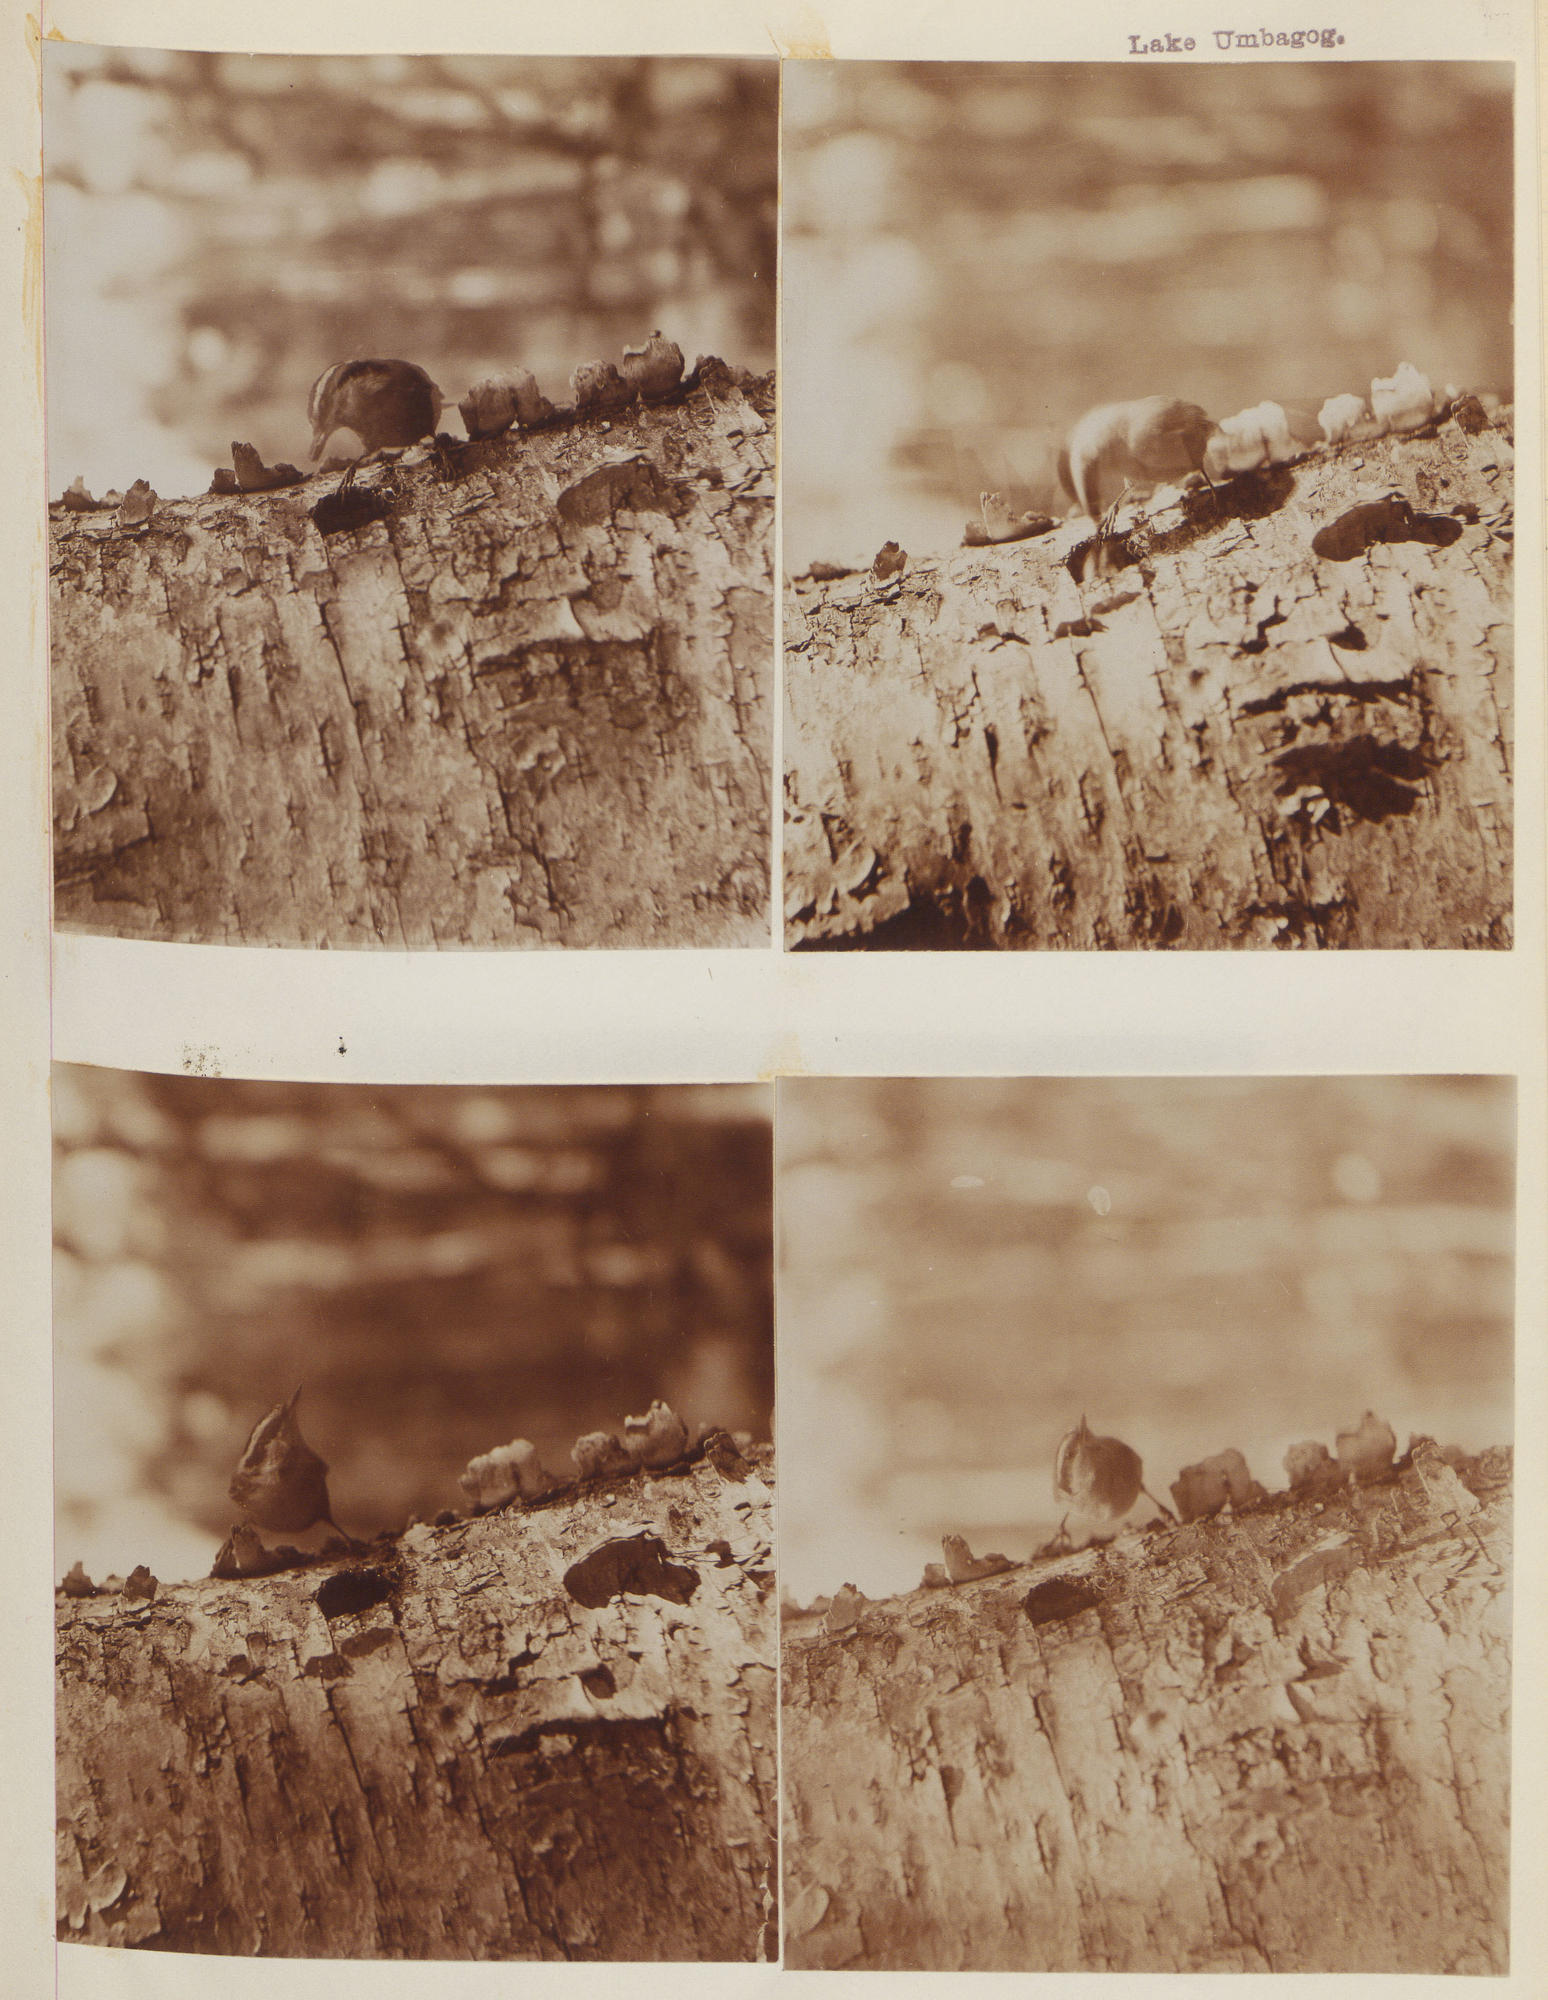 Four sepia-toned photographs of a nuthatch perched on a tree trunk, with varying focus and clarity.